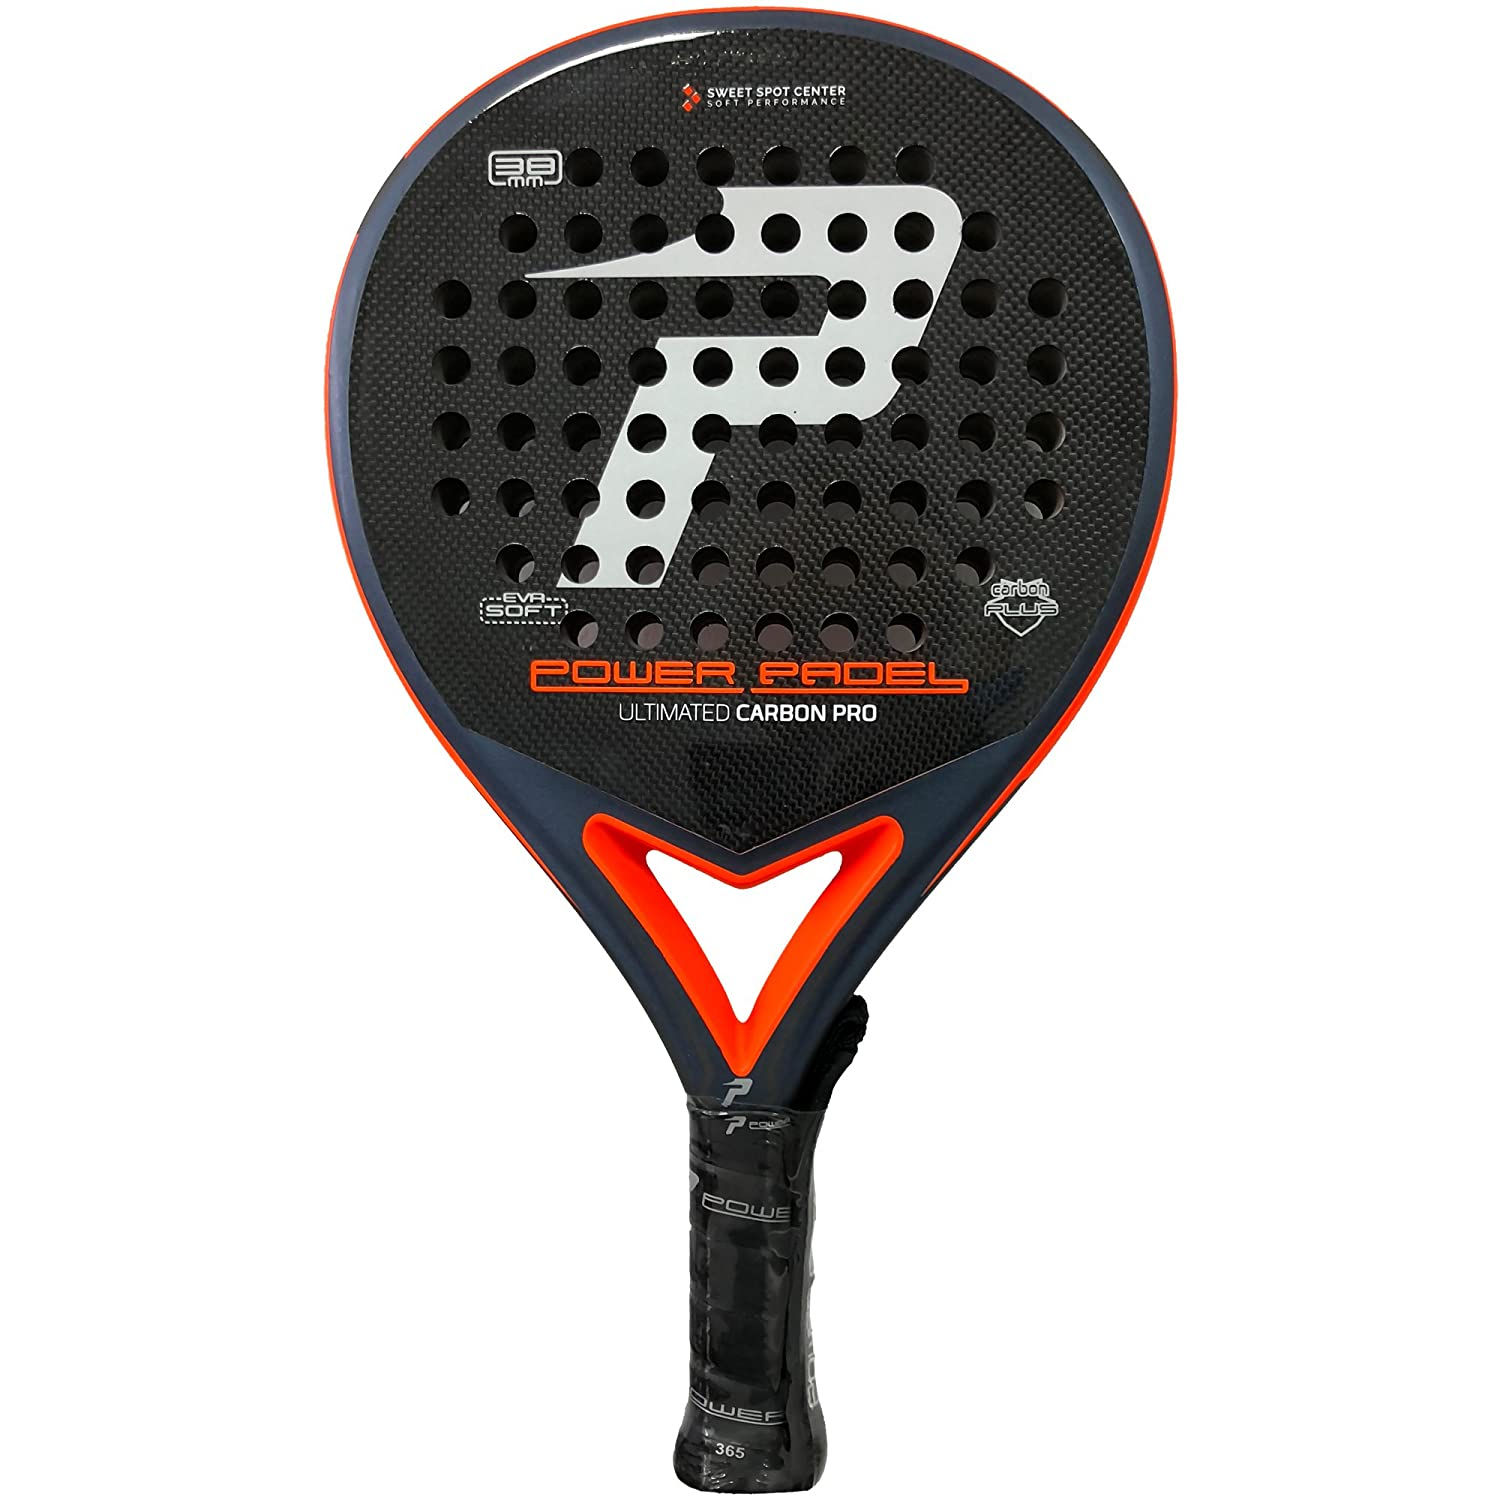 Pala Power Padel Ultimated Carbon Pro Silver / Orange Mate: Amazon.es: Deportes y aire libre